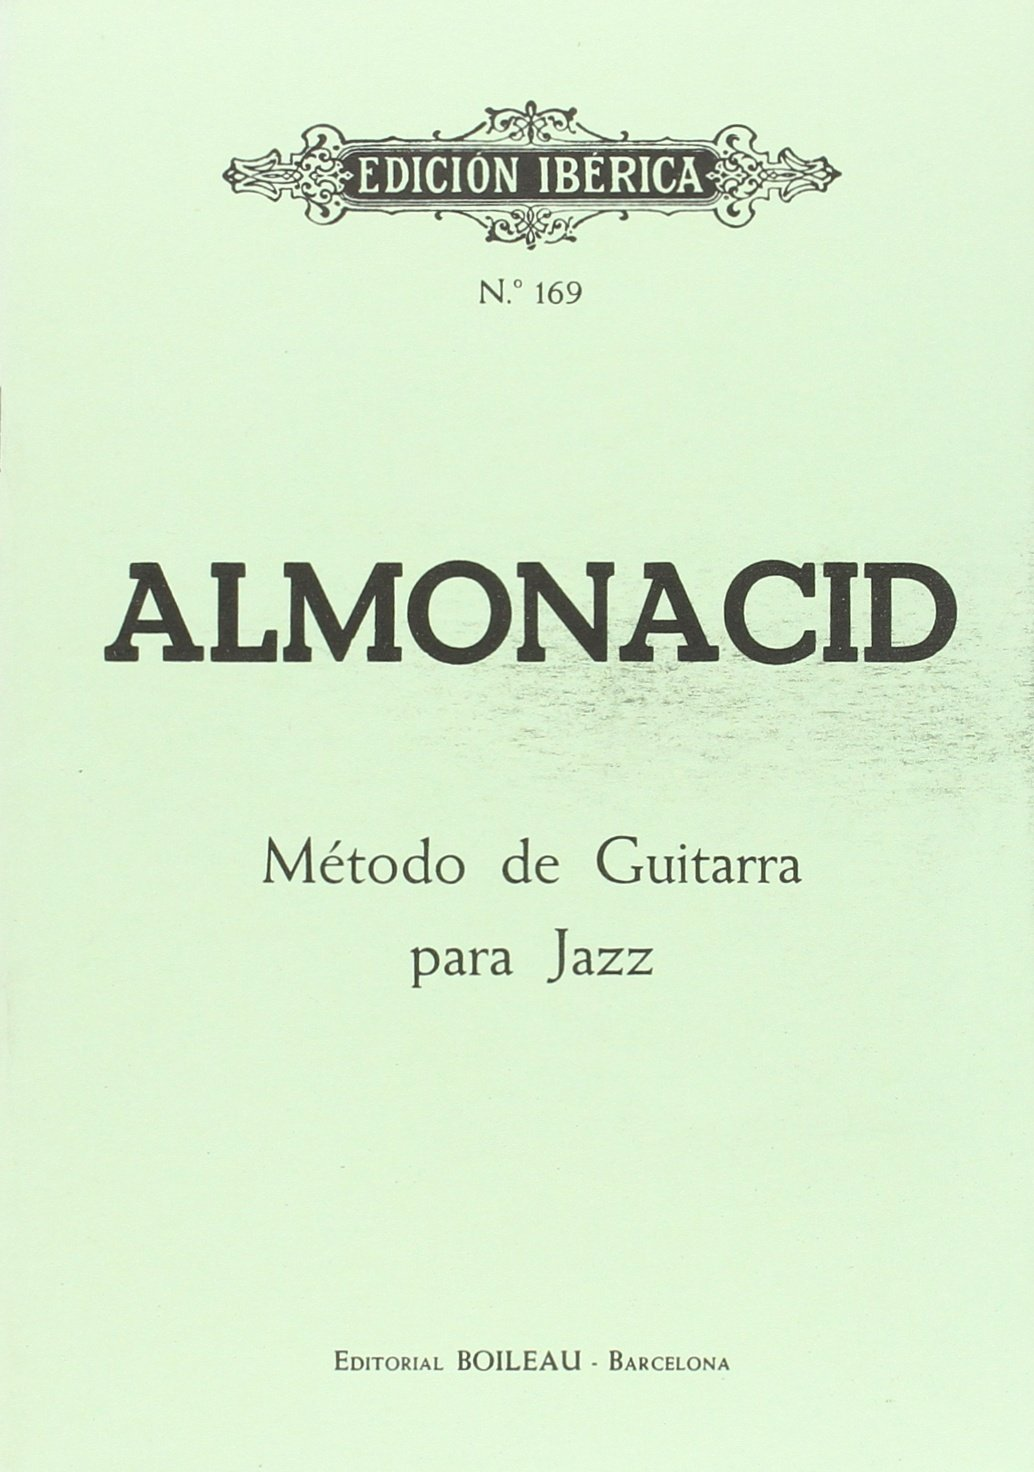 Método Guitarra Jazz: Amazon.es: Almonacid, Agapito: Libros